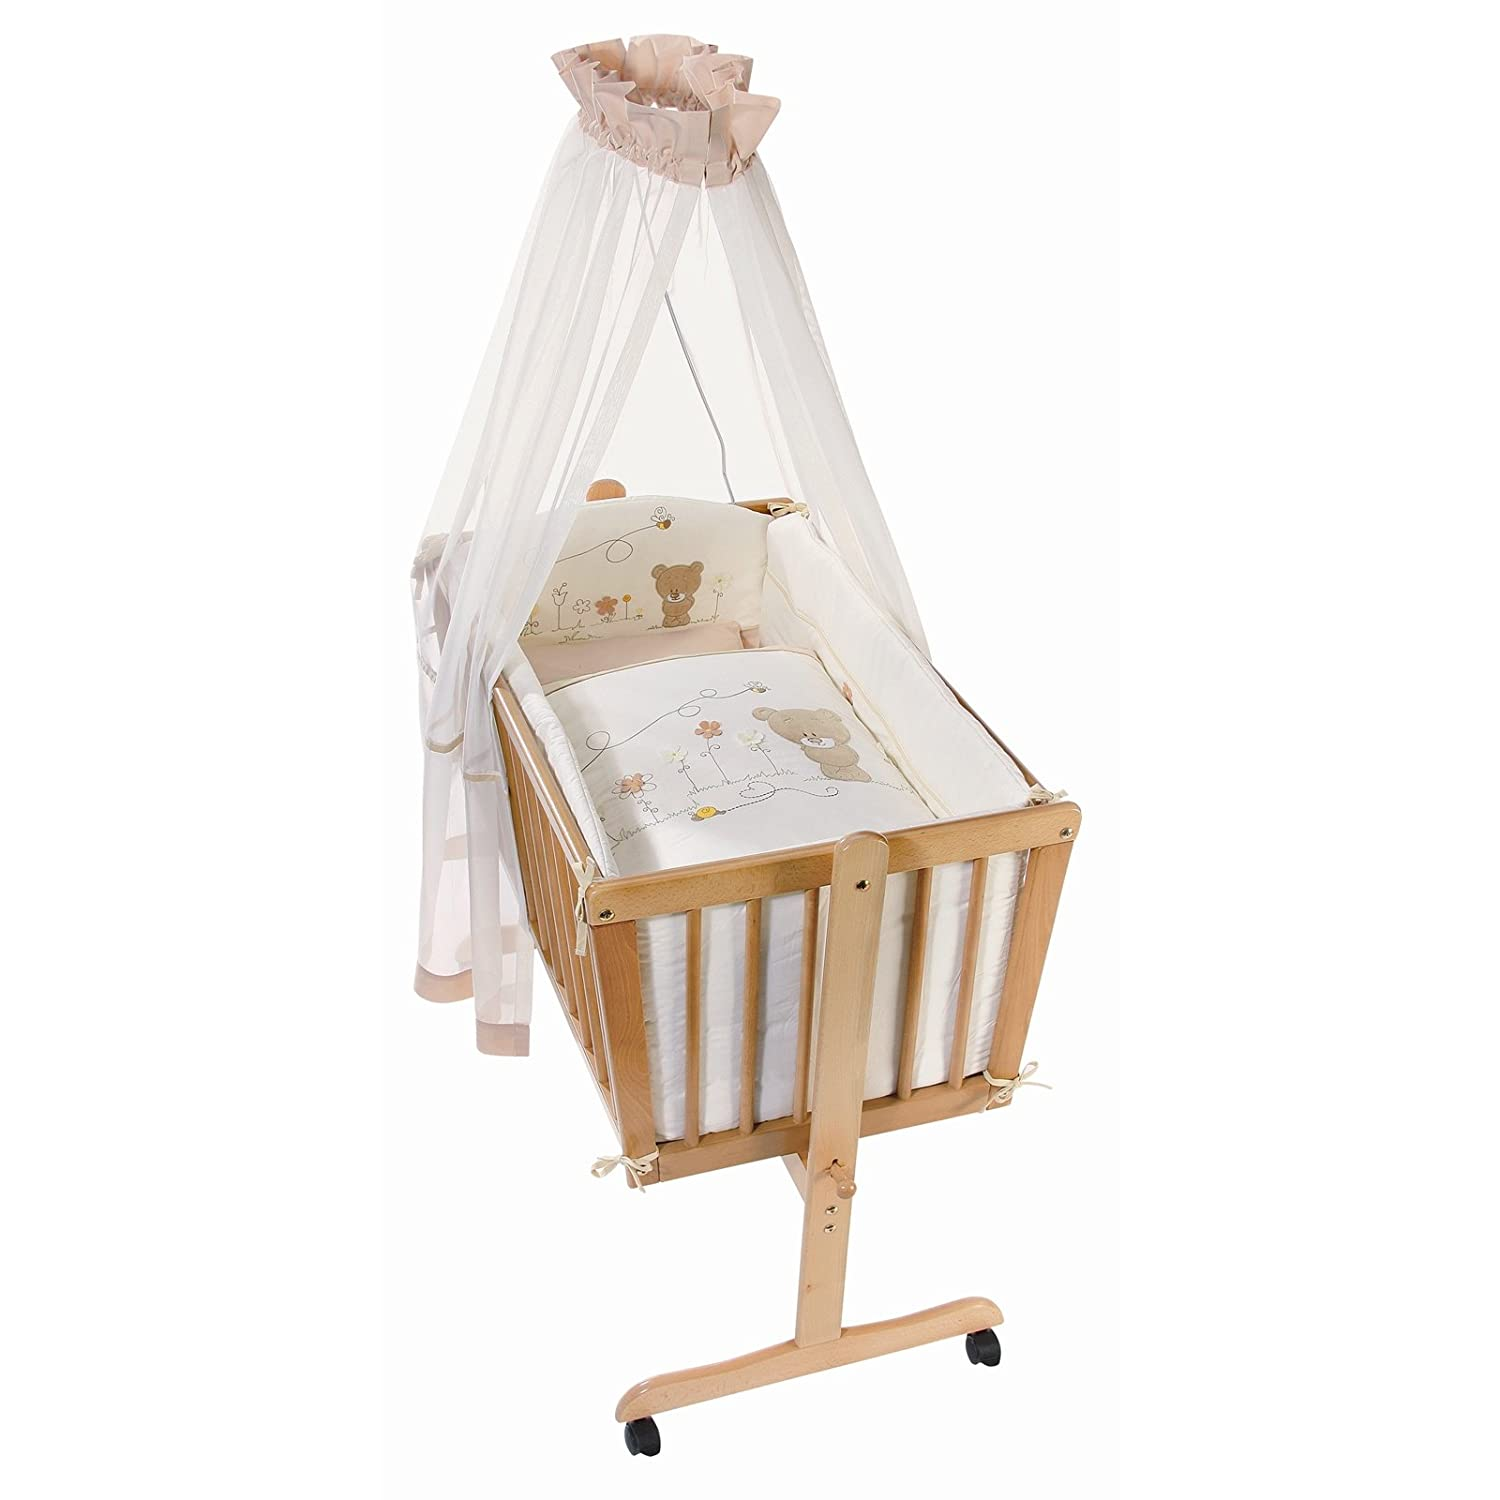 Easy Baby Wiege Komplettset weiß, Honey bear 182-79